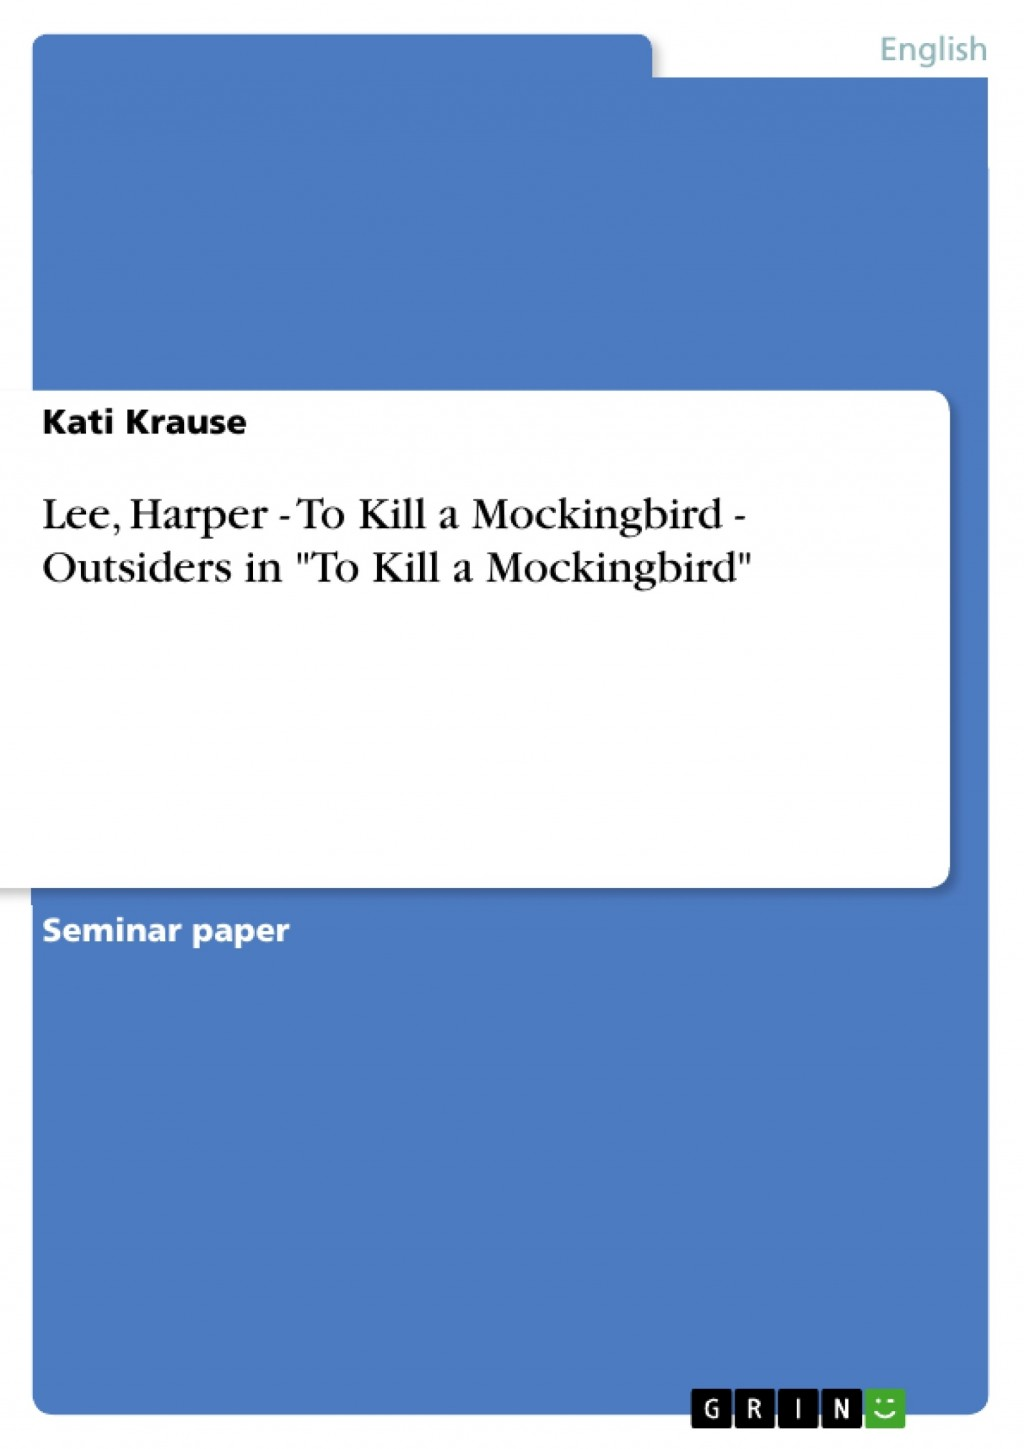 019 Essay Example Questions For To Kill Mockingbird Part 102122 0 Impressive A 1 Discussion Chapter 16 14 15 Large